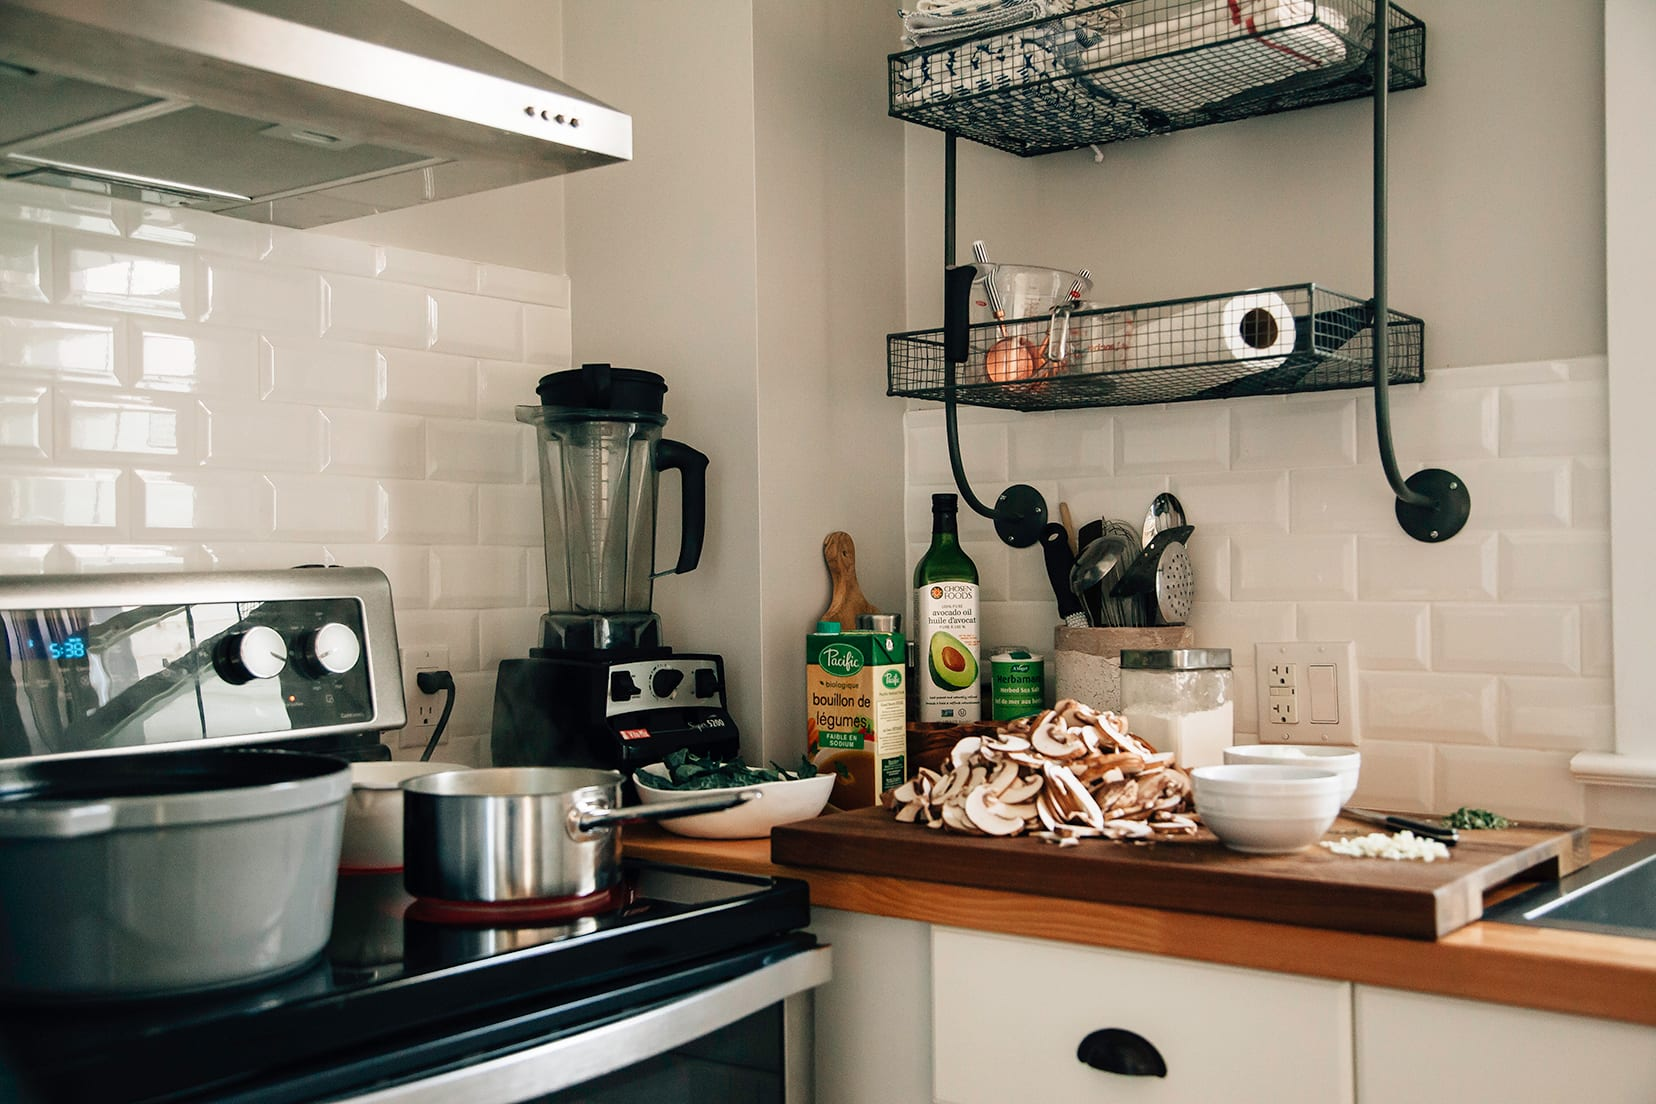 Image shows a kitchen scene with pots on the stove and a cutting board with sliced mushrooms on top.